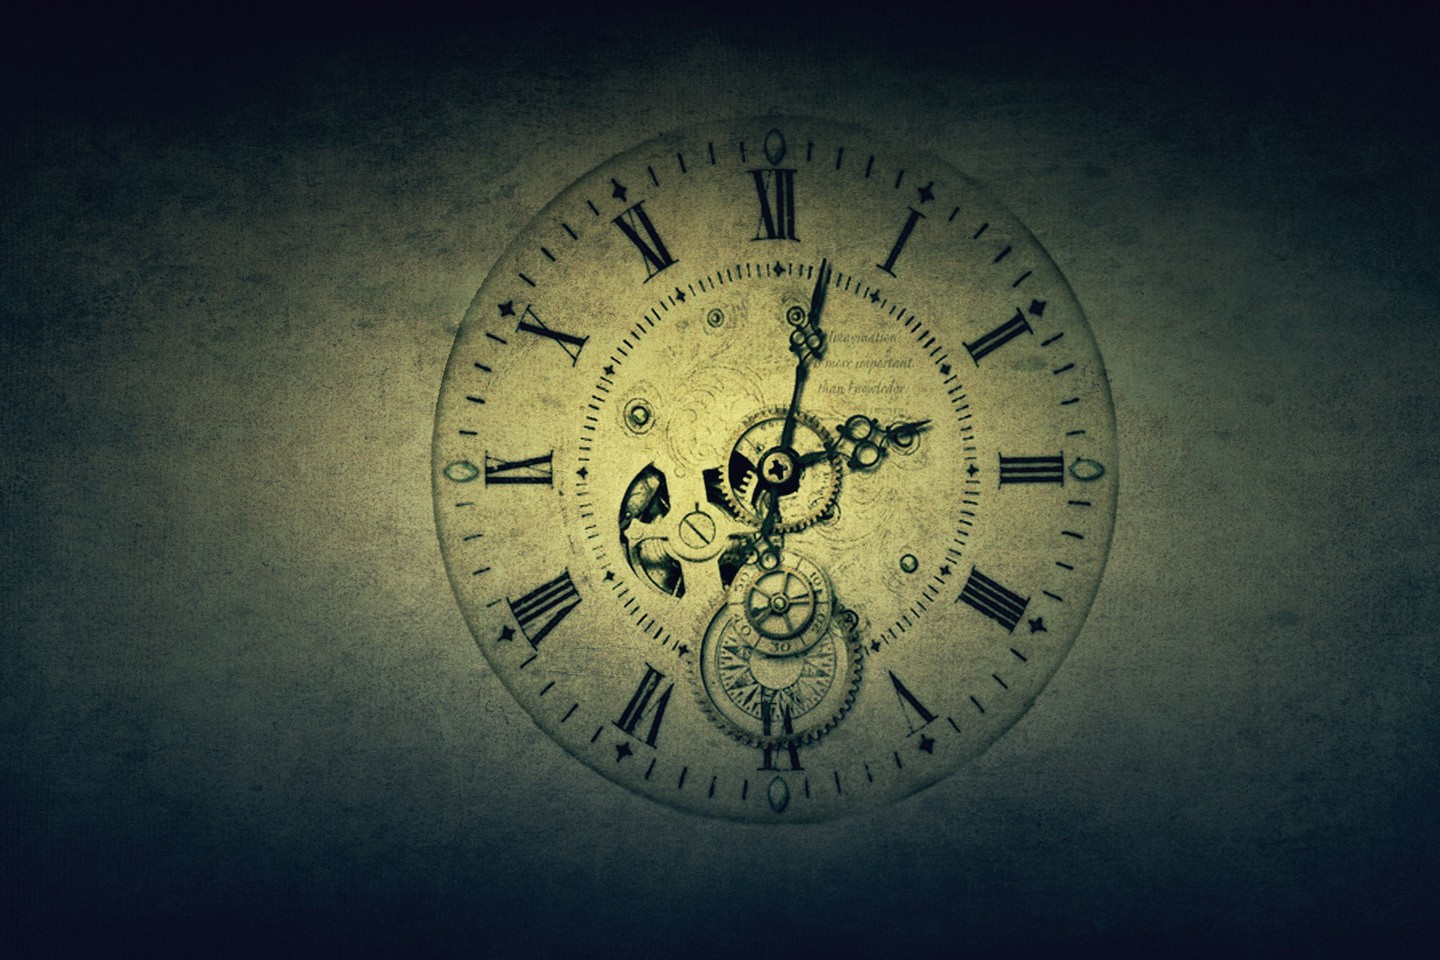 Clocks Digital Art Wallpaper